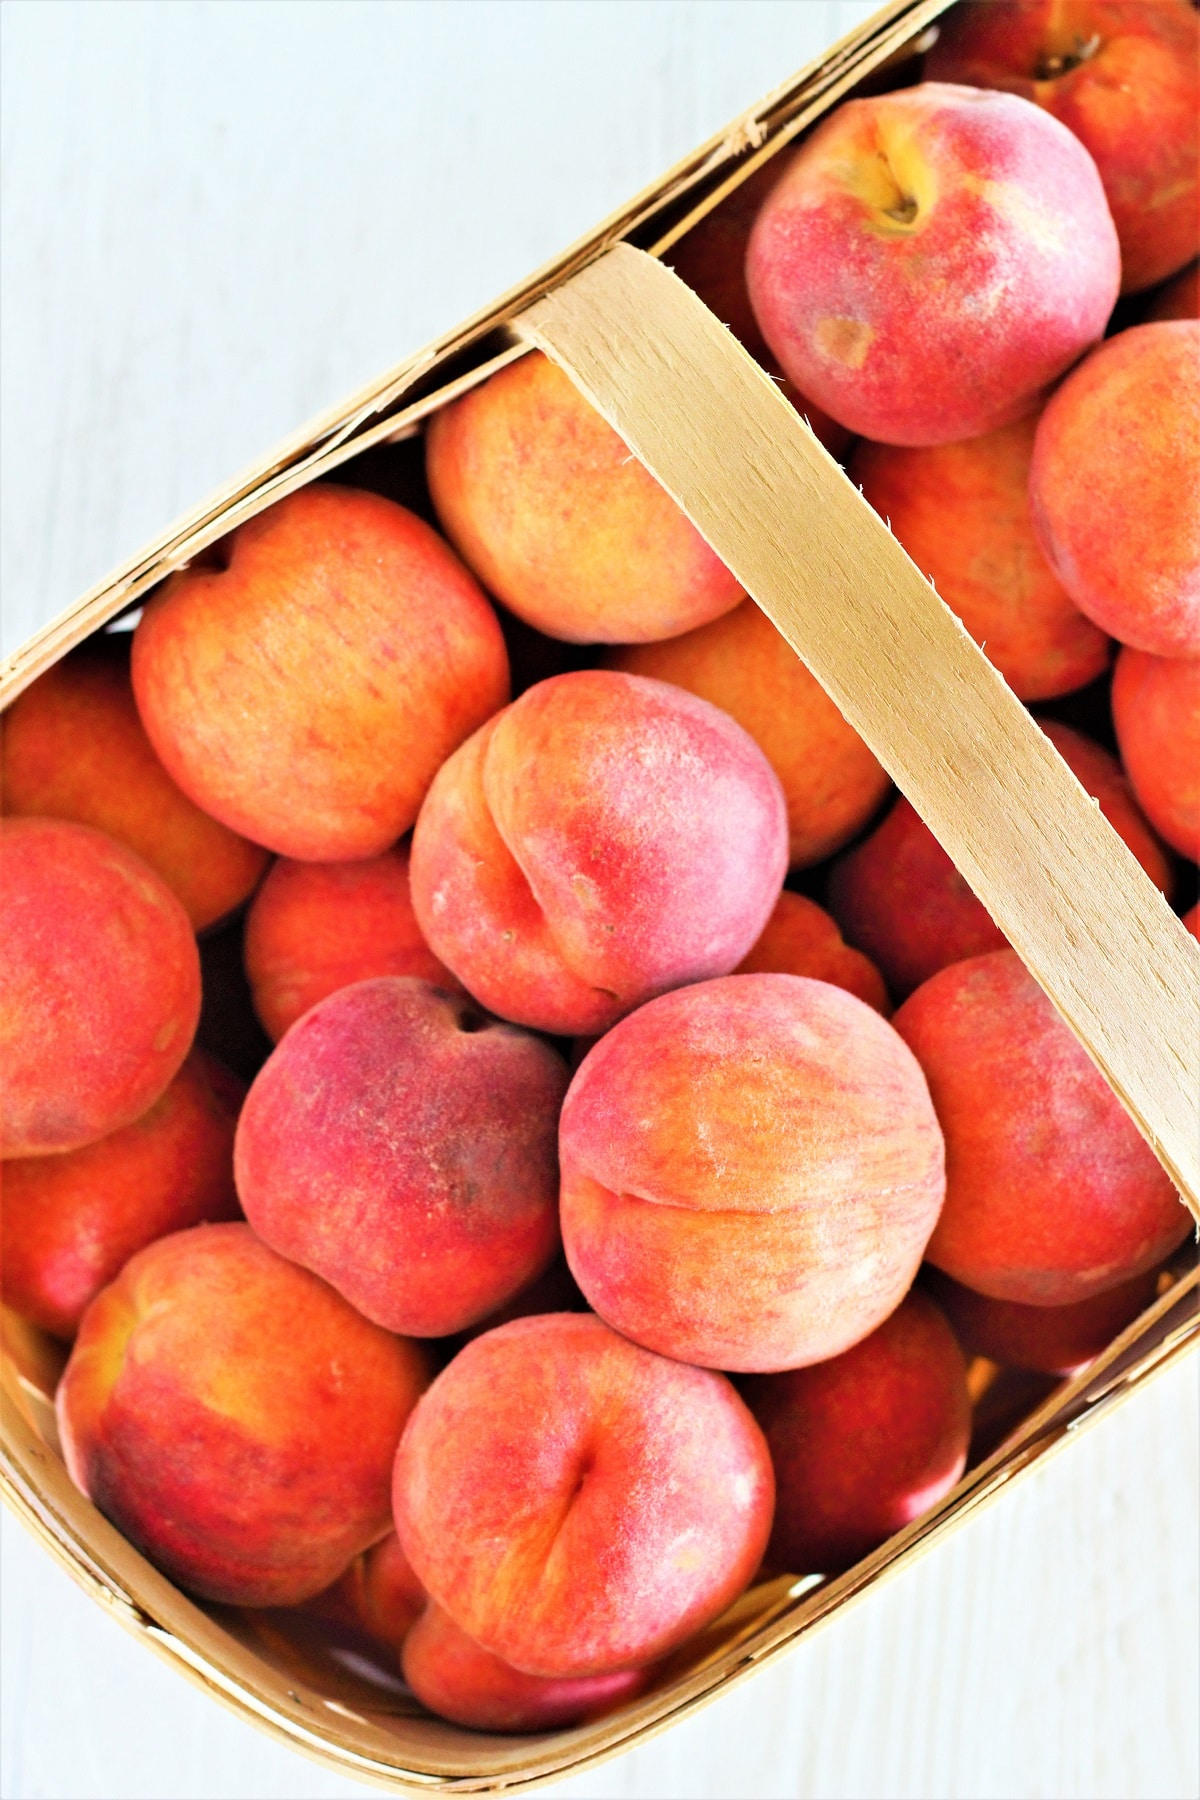 large basket of fresh peaches